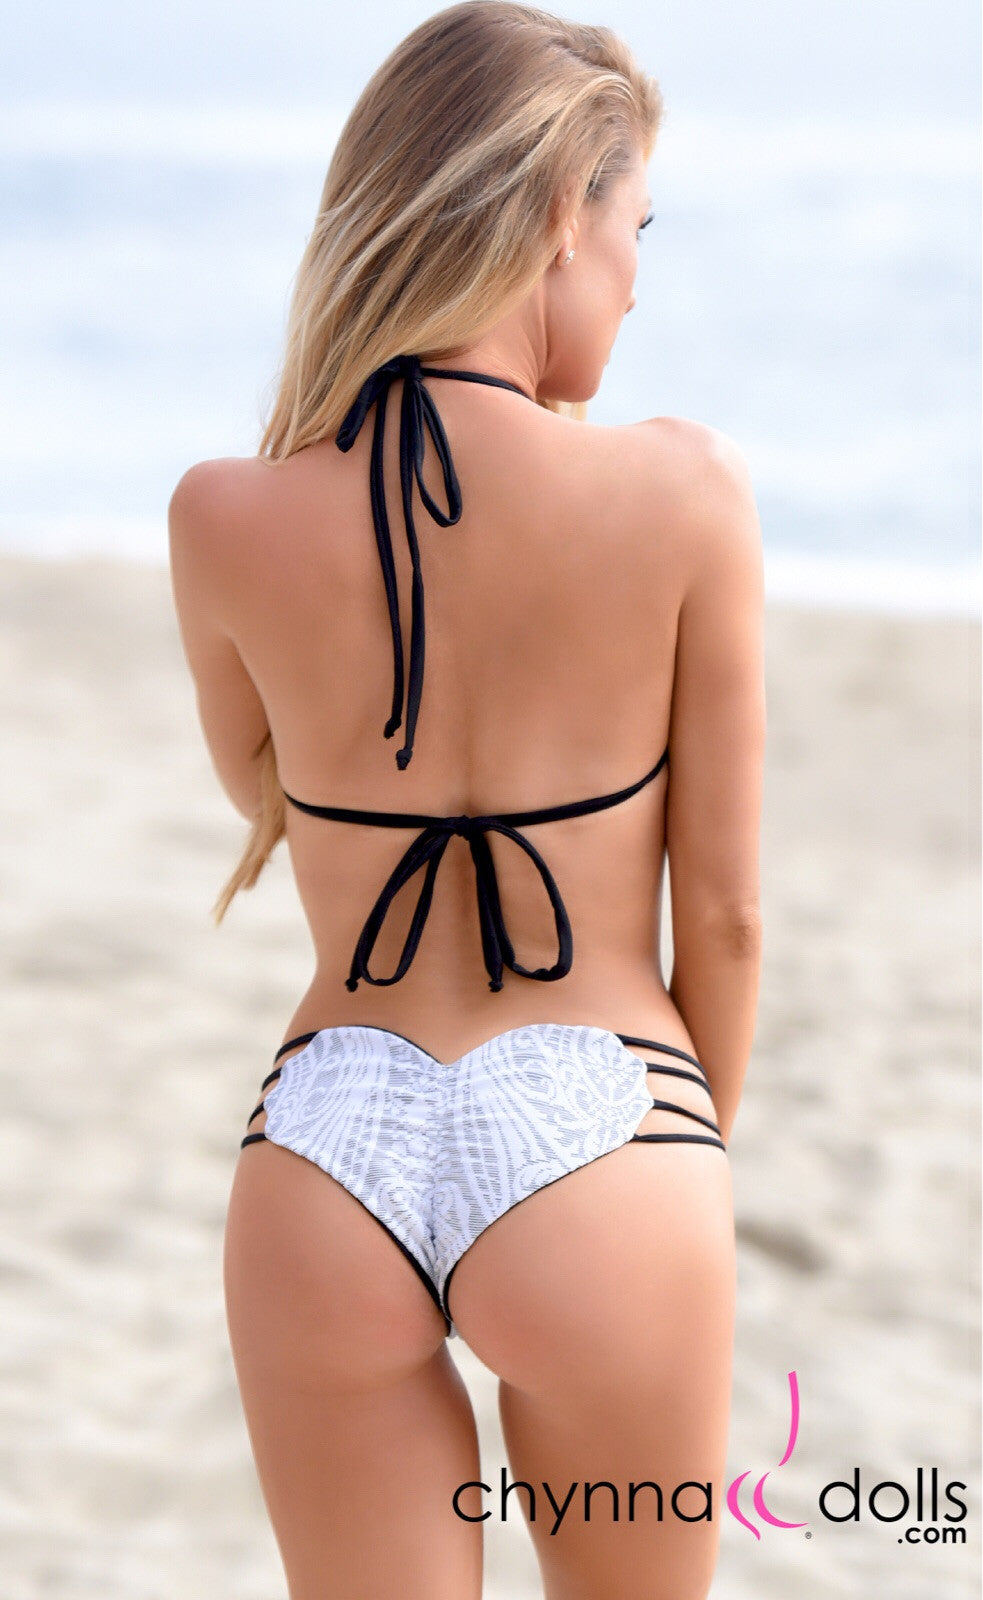 Heart Cake: Heart Shaped Reversible Bikini in Black x White Lace - Chynna Dolls